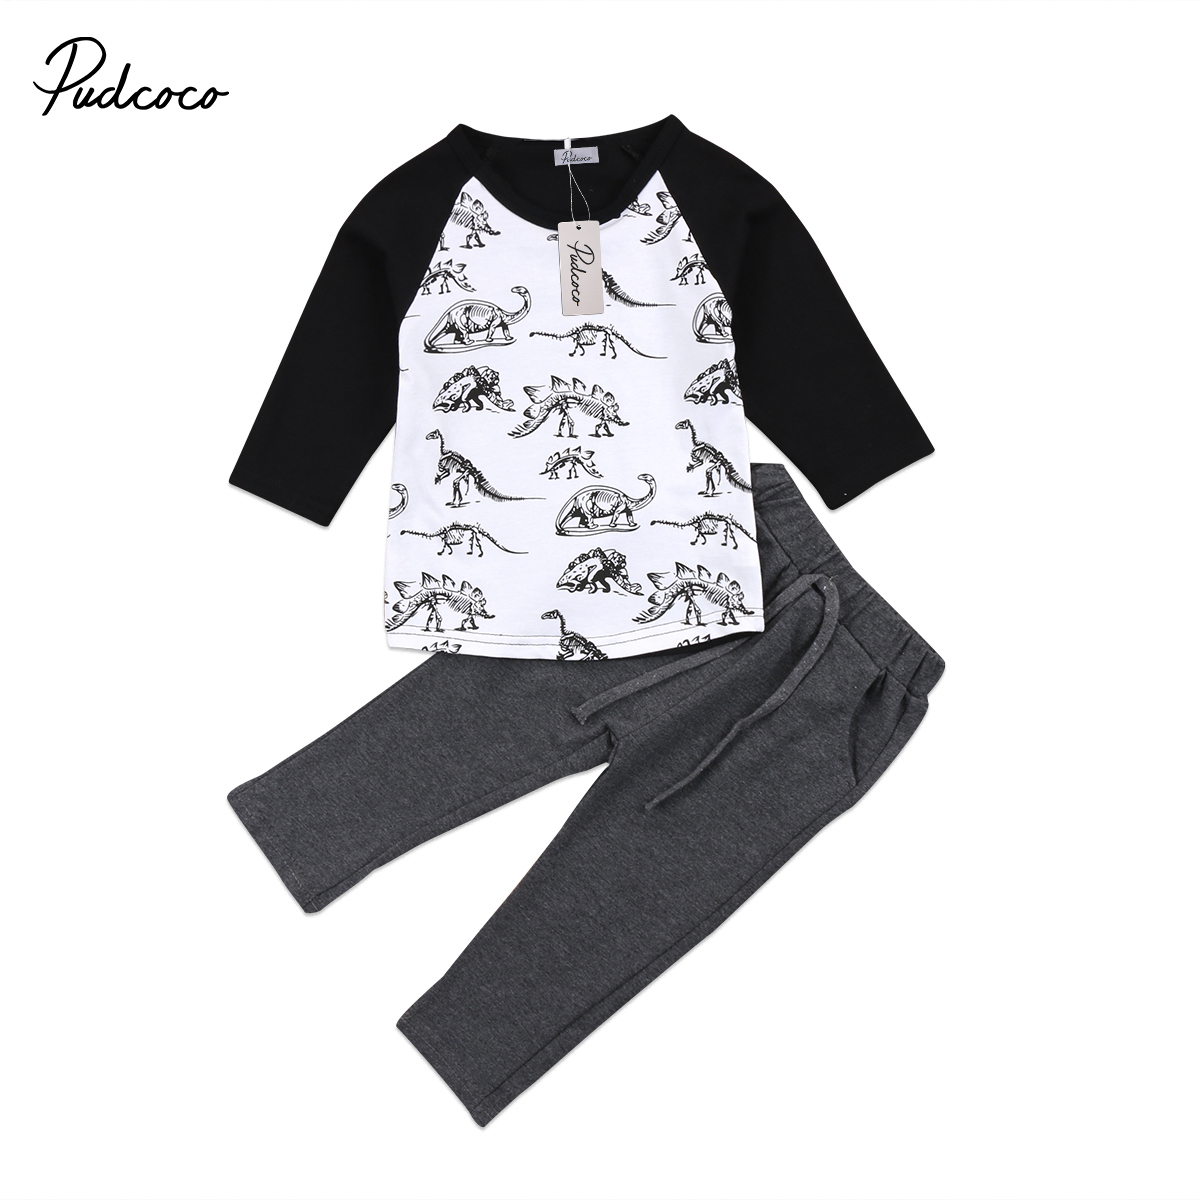 2018 Baby Boy Long Sleeve T-shirt+Pants Outfit Dinosaur Pattern Toddler New Arrival Warm Clothes